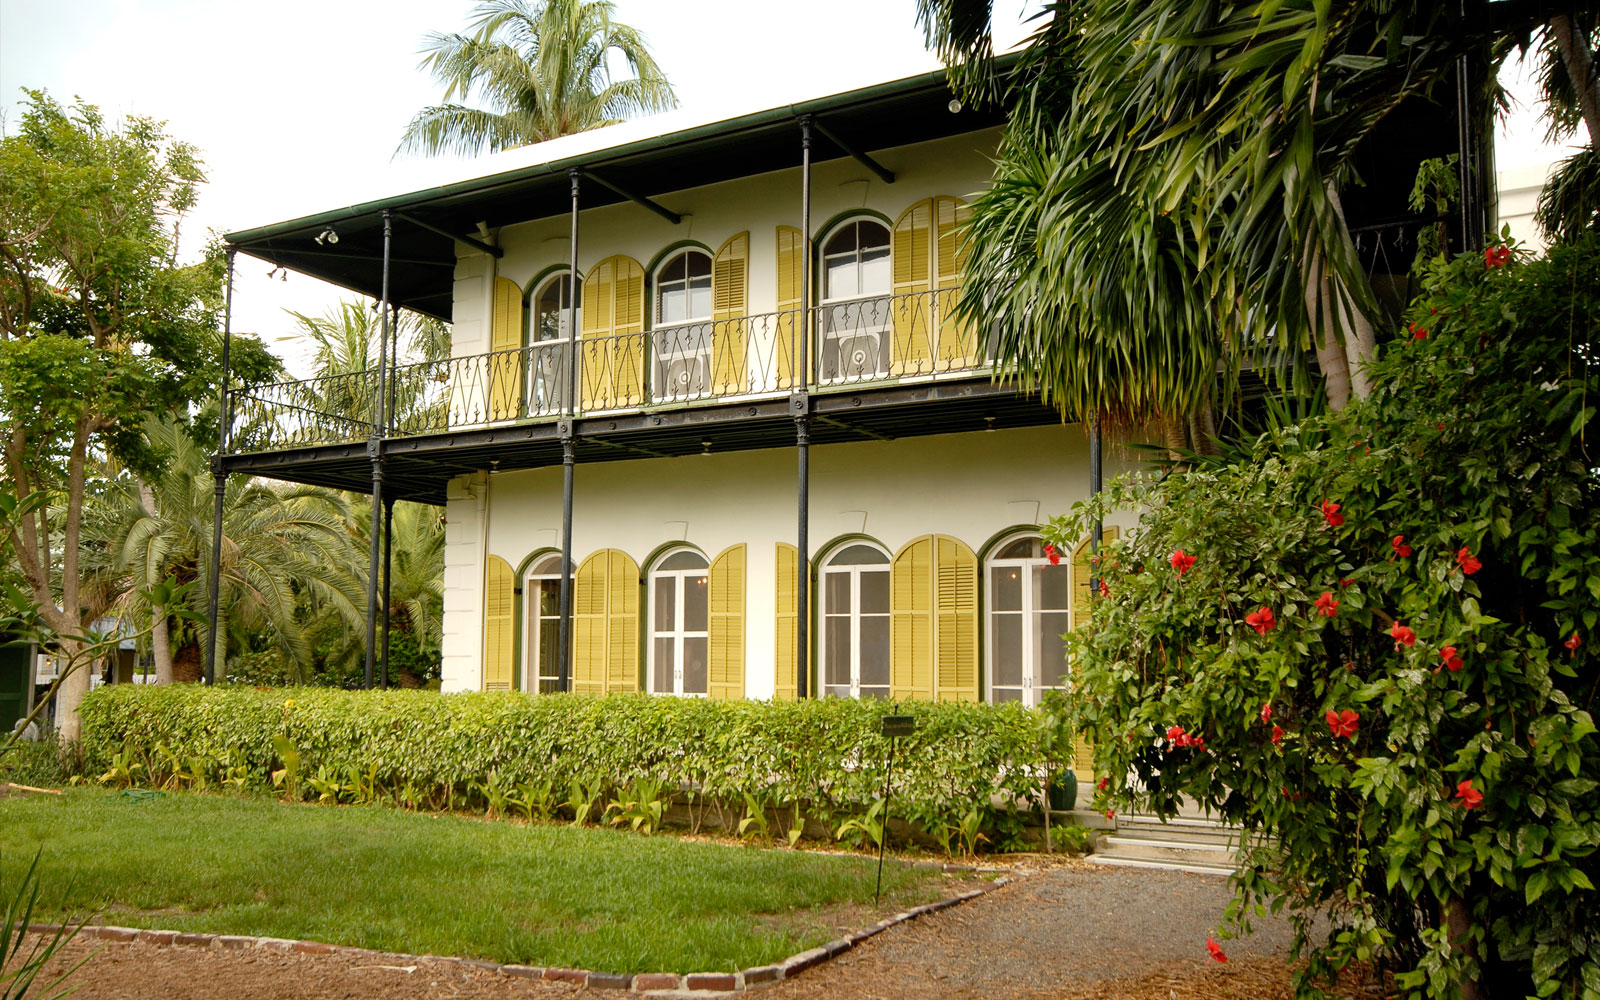 Ernest hemingway home key west literary greatness and cats for Bath house key west